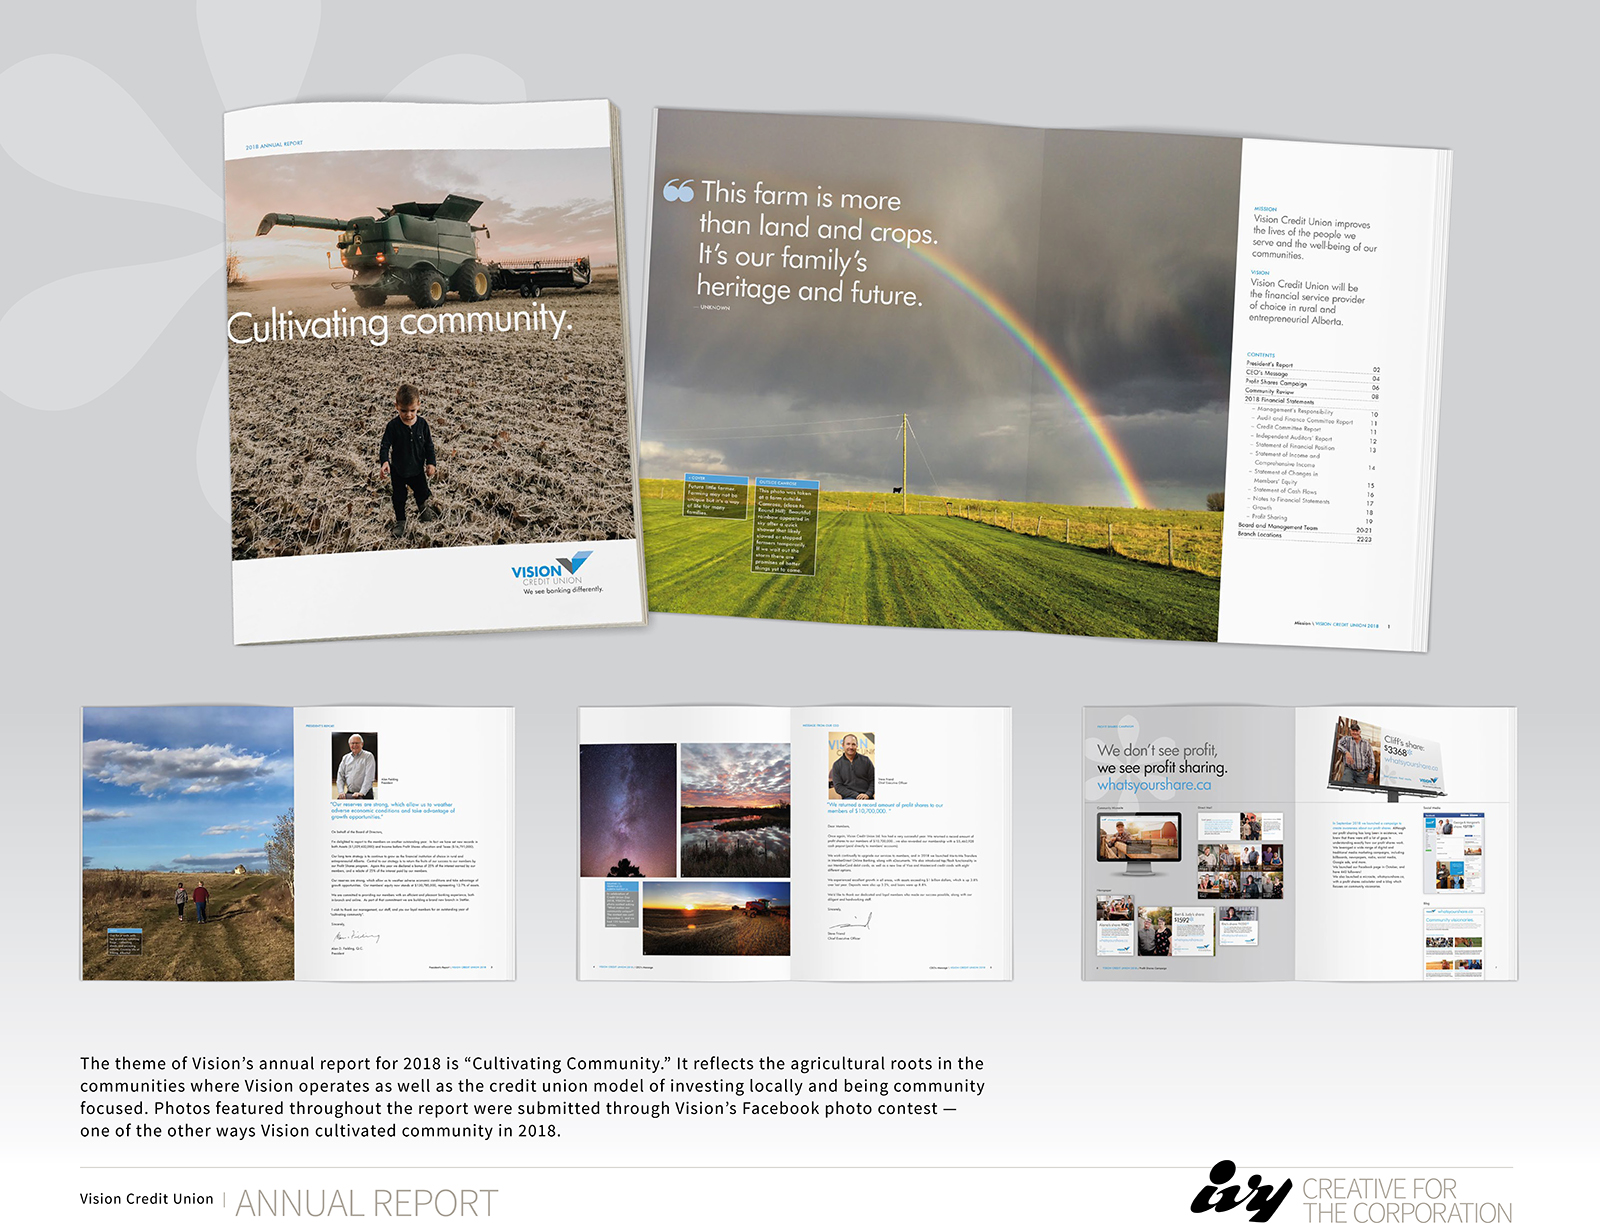 Front cover of annual report with child in a field and a tractor tilling the field behind him